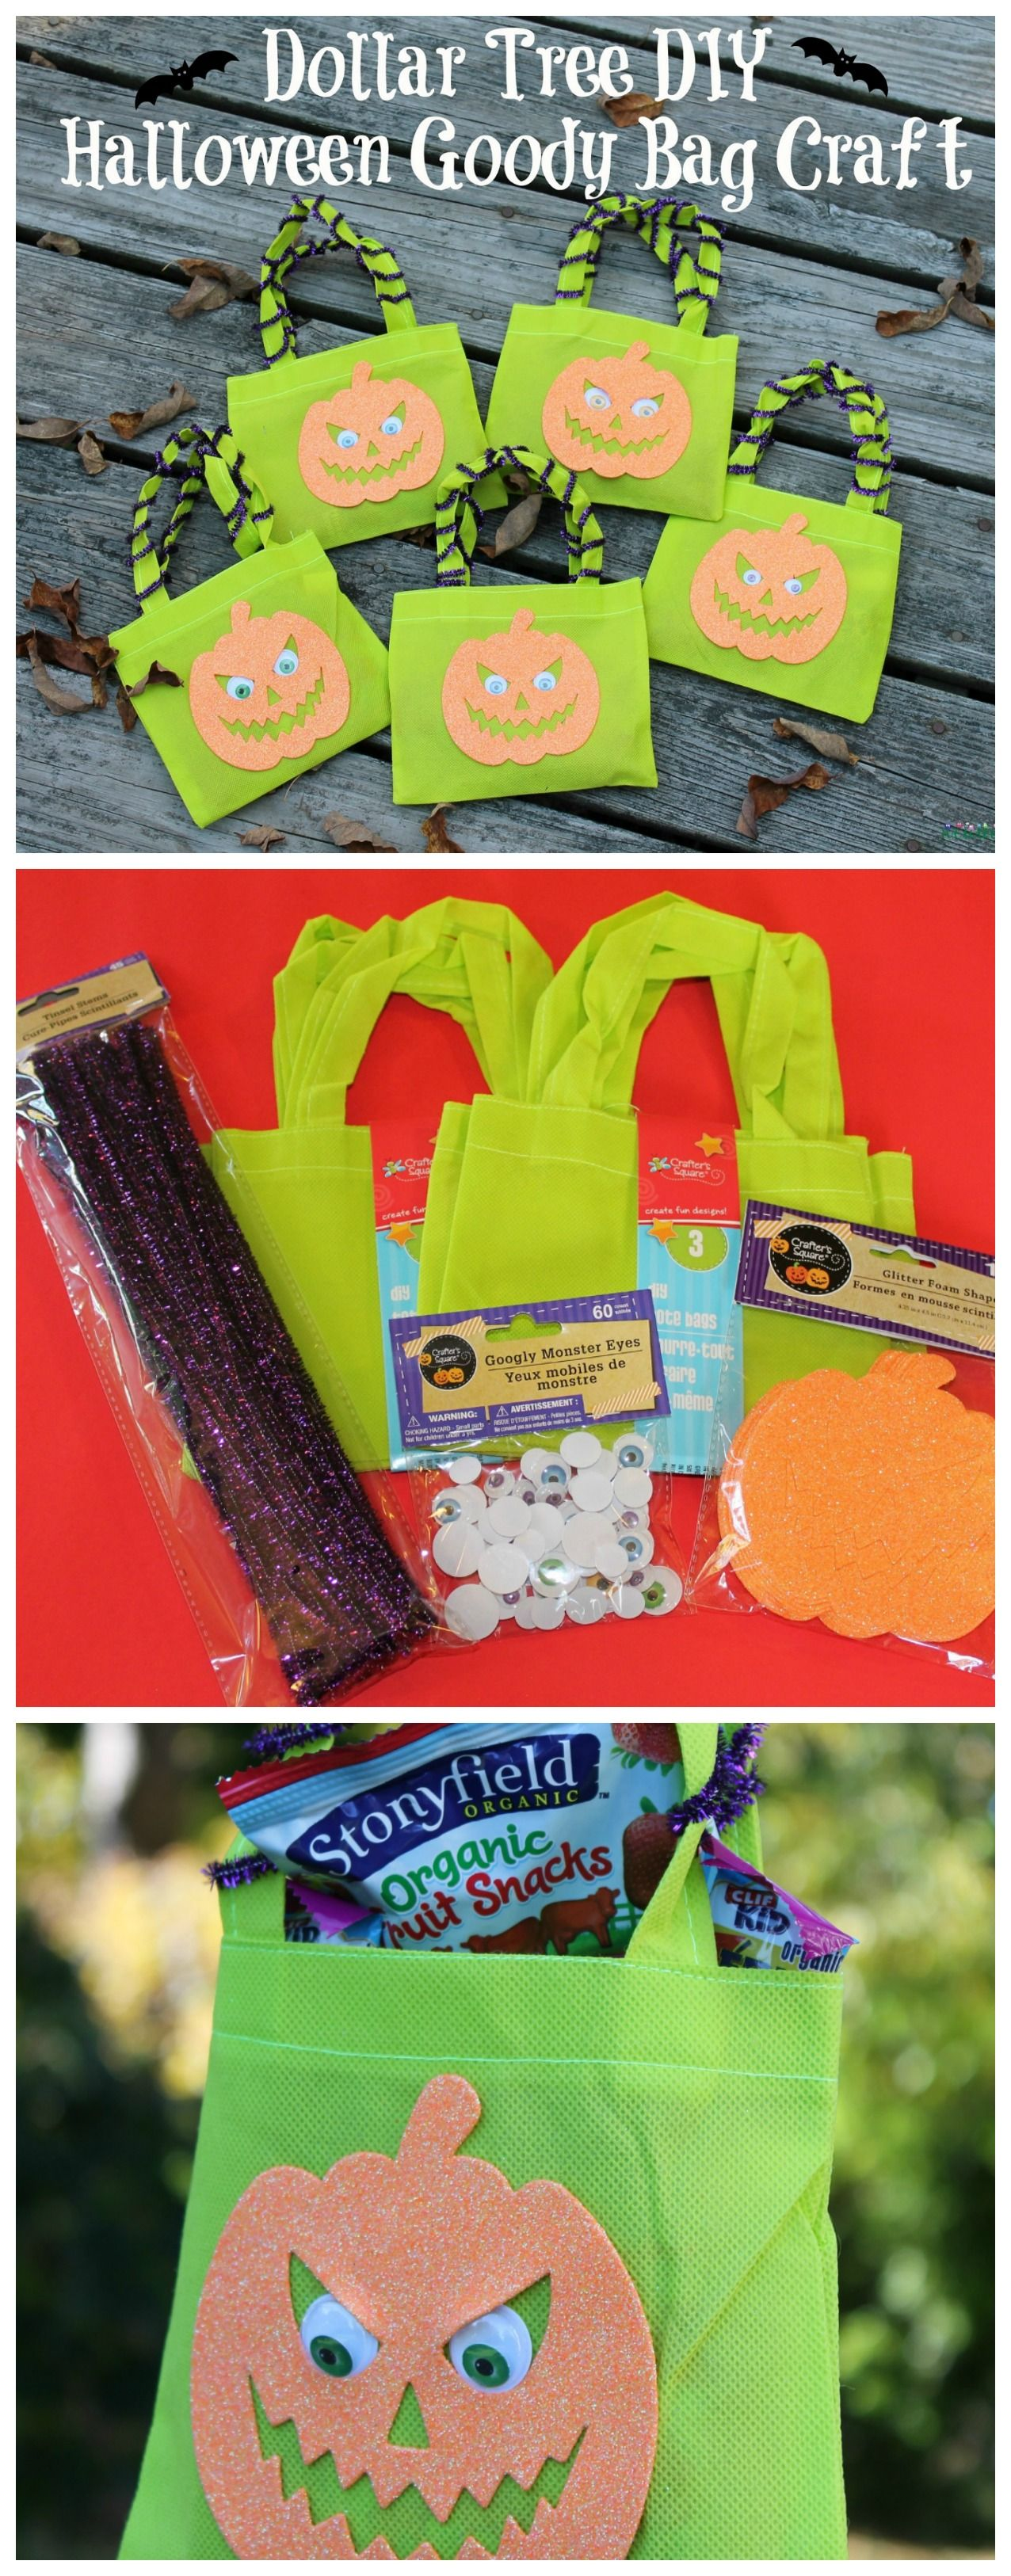 Super easy Halloween DIY craft made from items from the